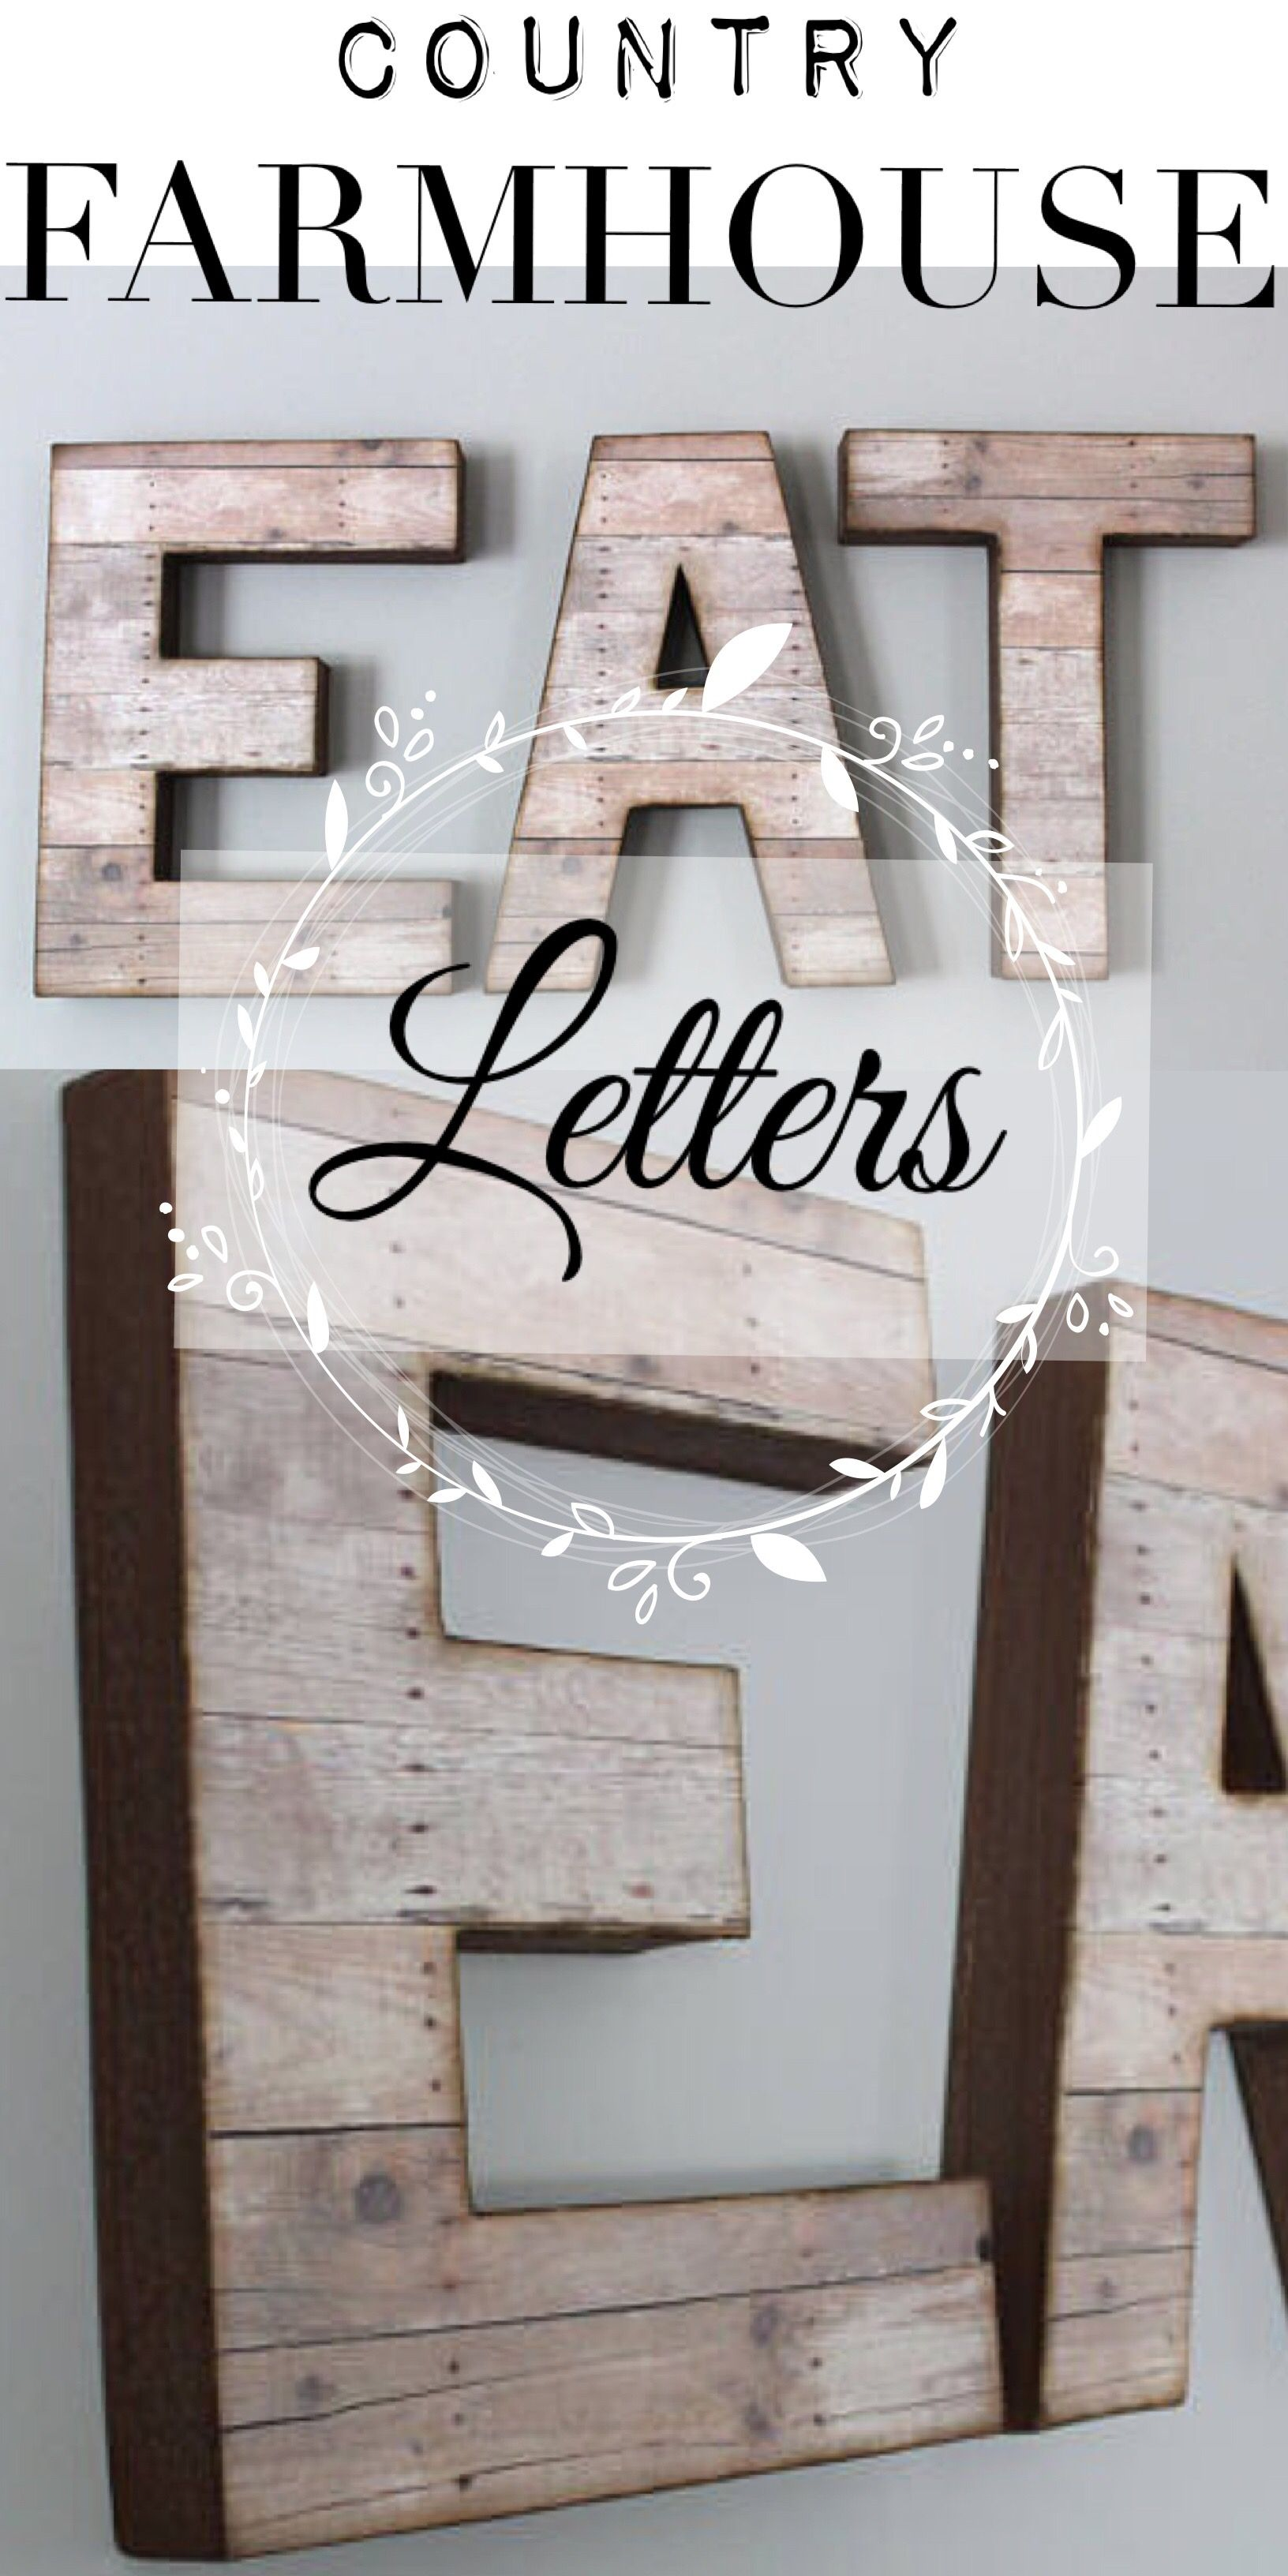 Kitchen Letters For Wall Glamorous Ad Farmhouse Style Country Kitchen Letterseat Signbig Design Decoration